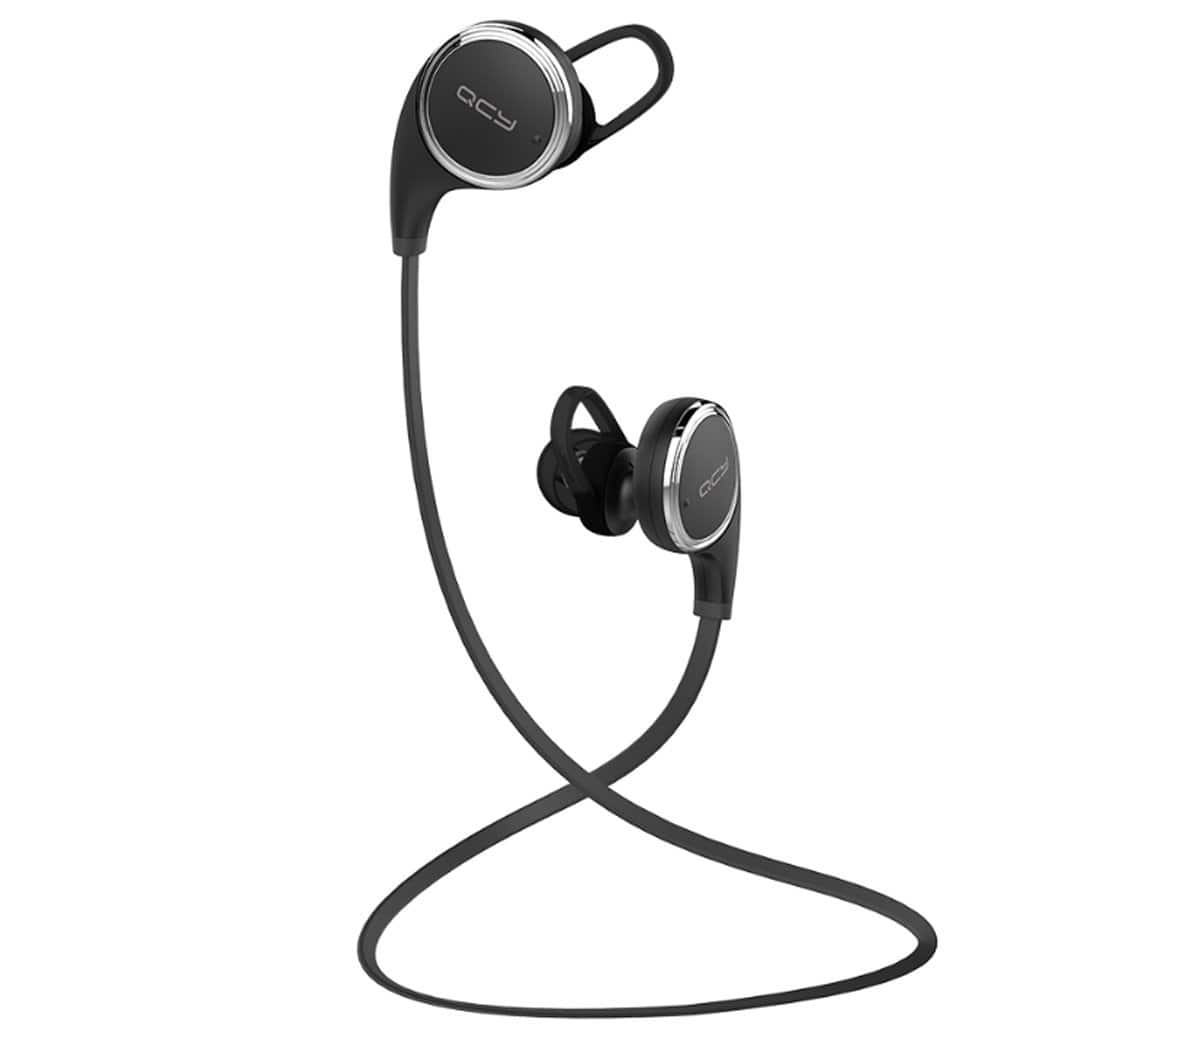 QCY QY8 Wireless Bluetooth 4.1 Sports Headphones  $4